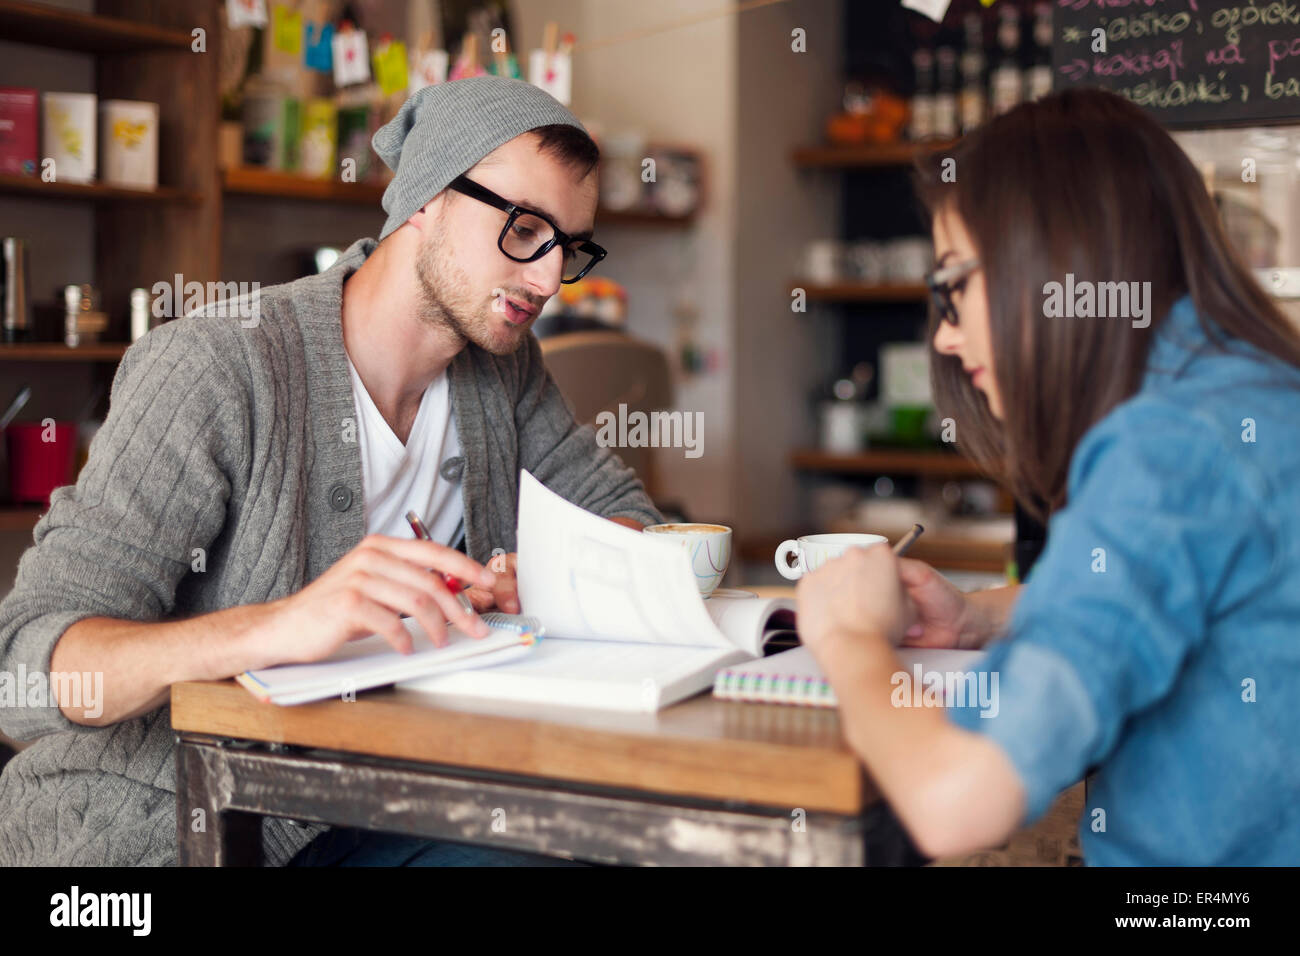 Focus college students preparing for exams at cafe. Krakow, Poland - Stock Image